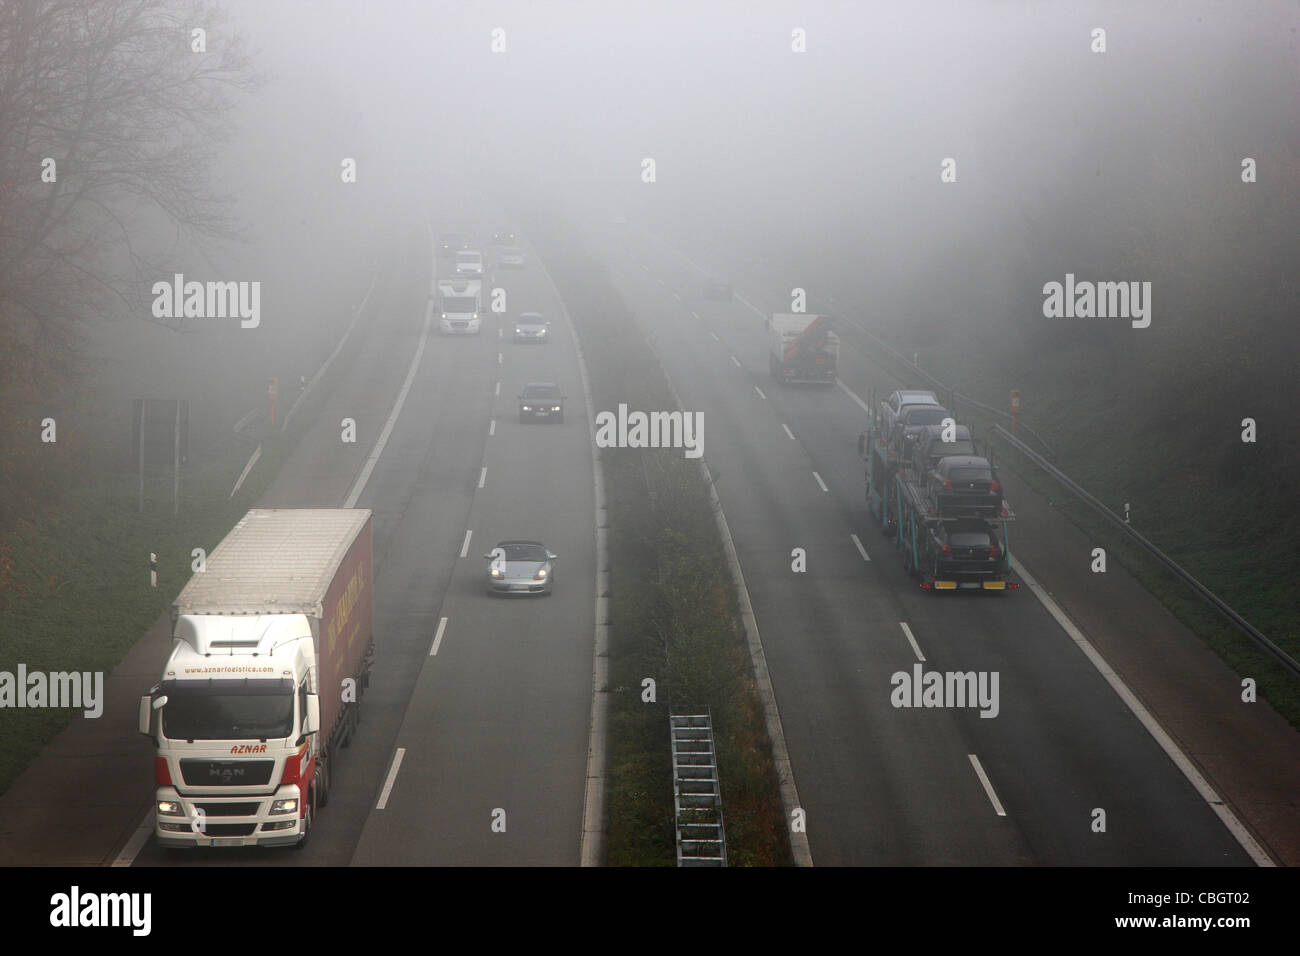 Motorway, Autobahn A52, traffic in thick fog. Essen, Germany, Europe. - Stock Image